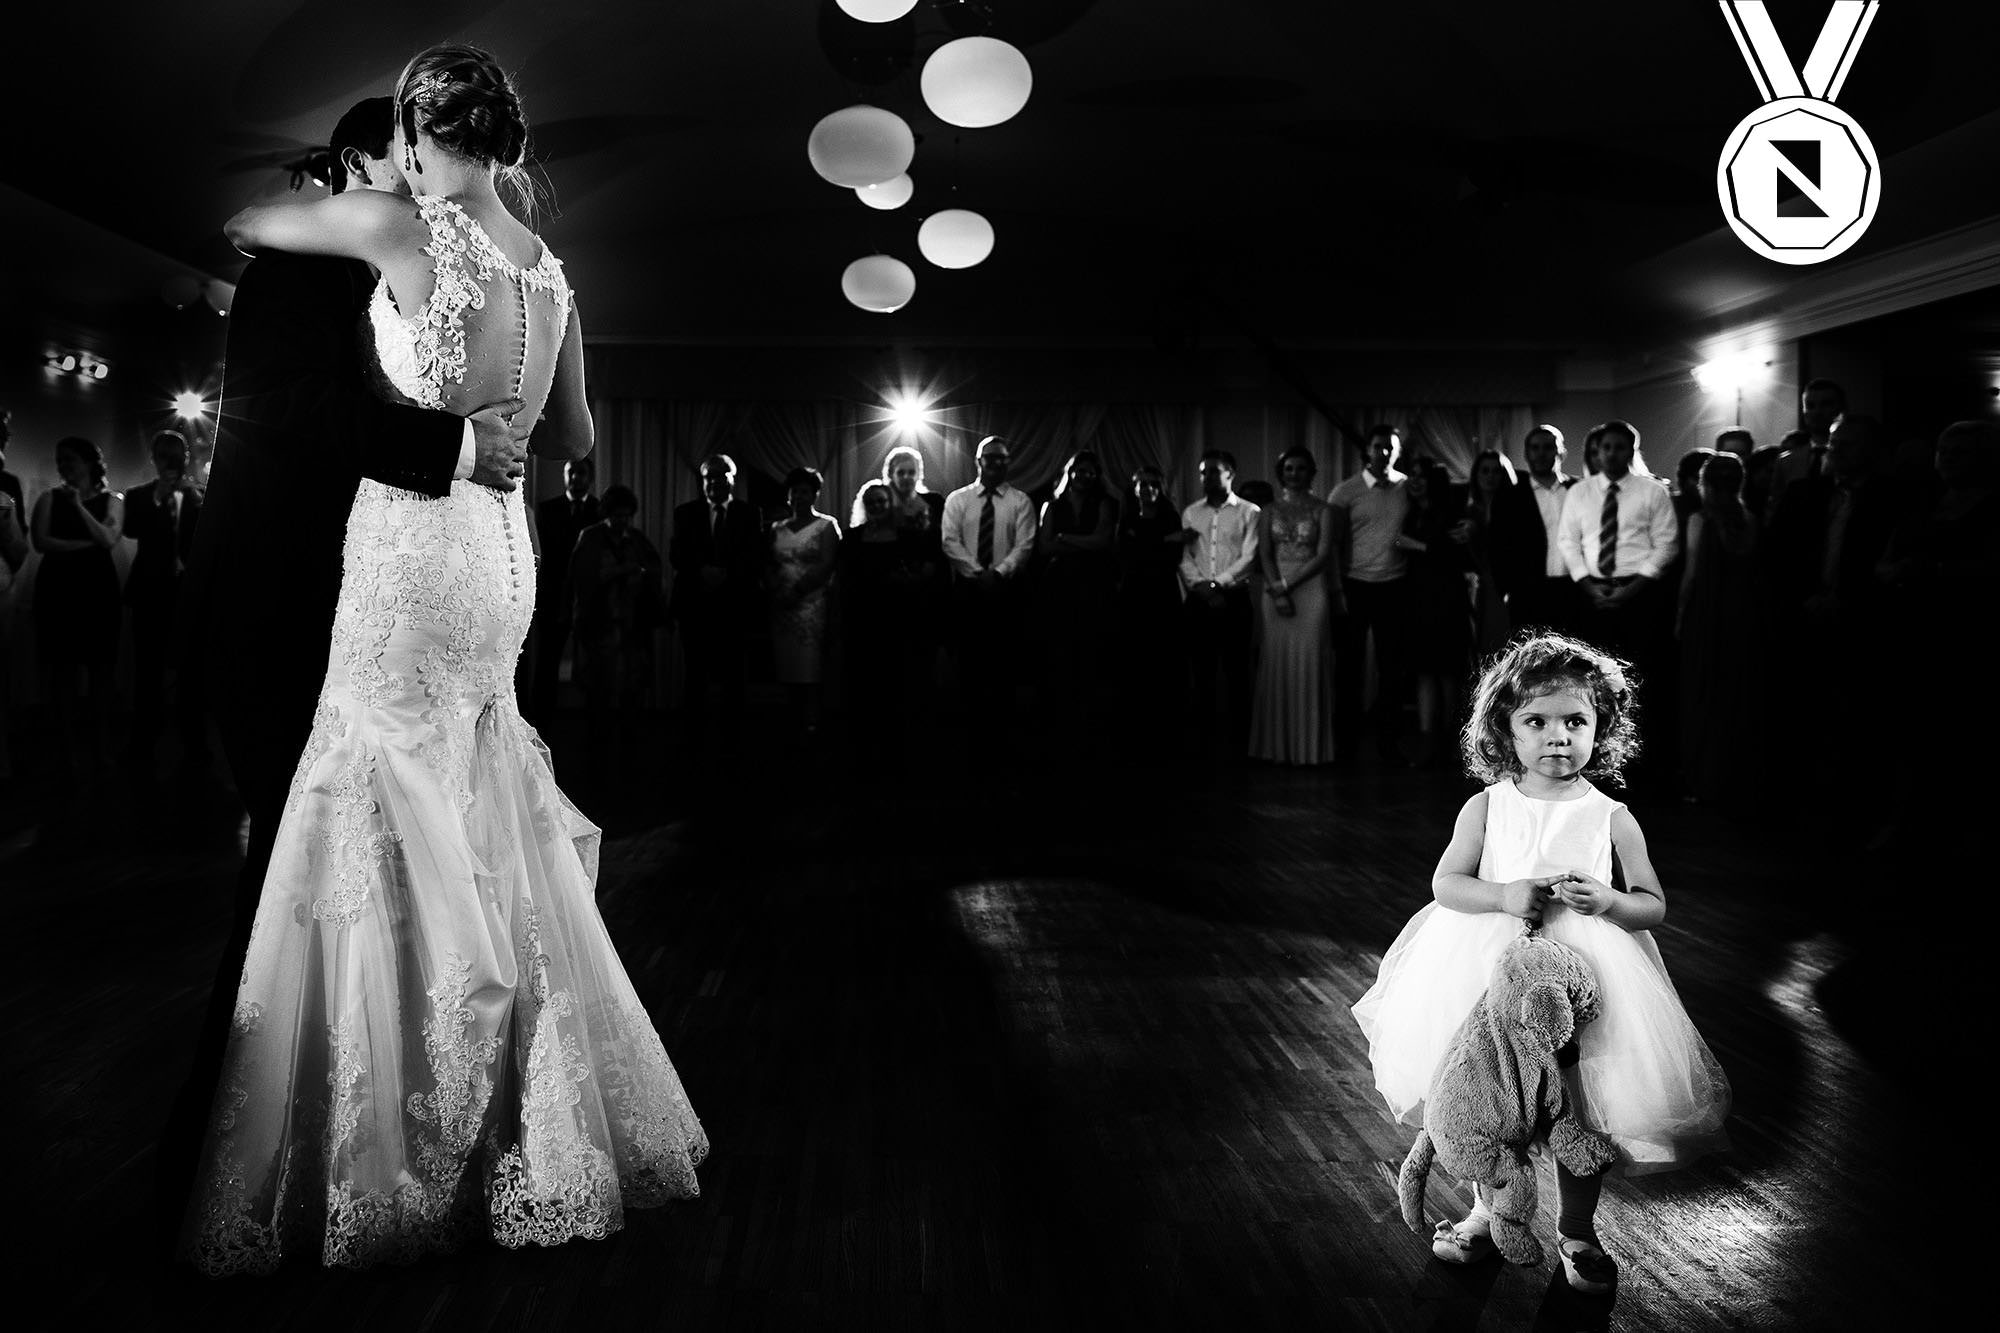 Wedding Photography Awards - NineDots July 2018 Awards